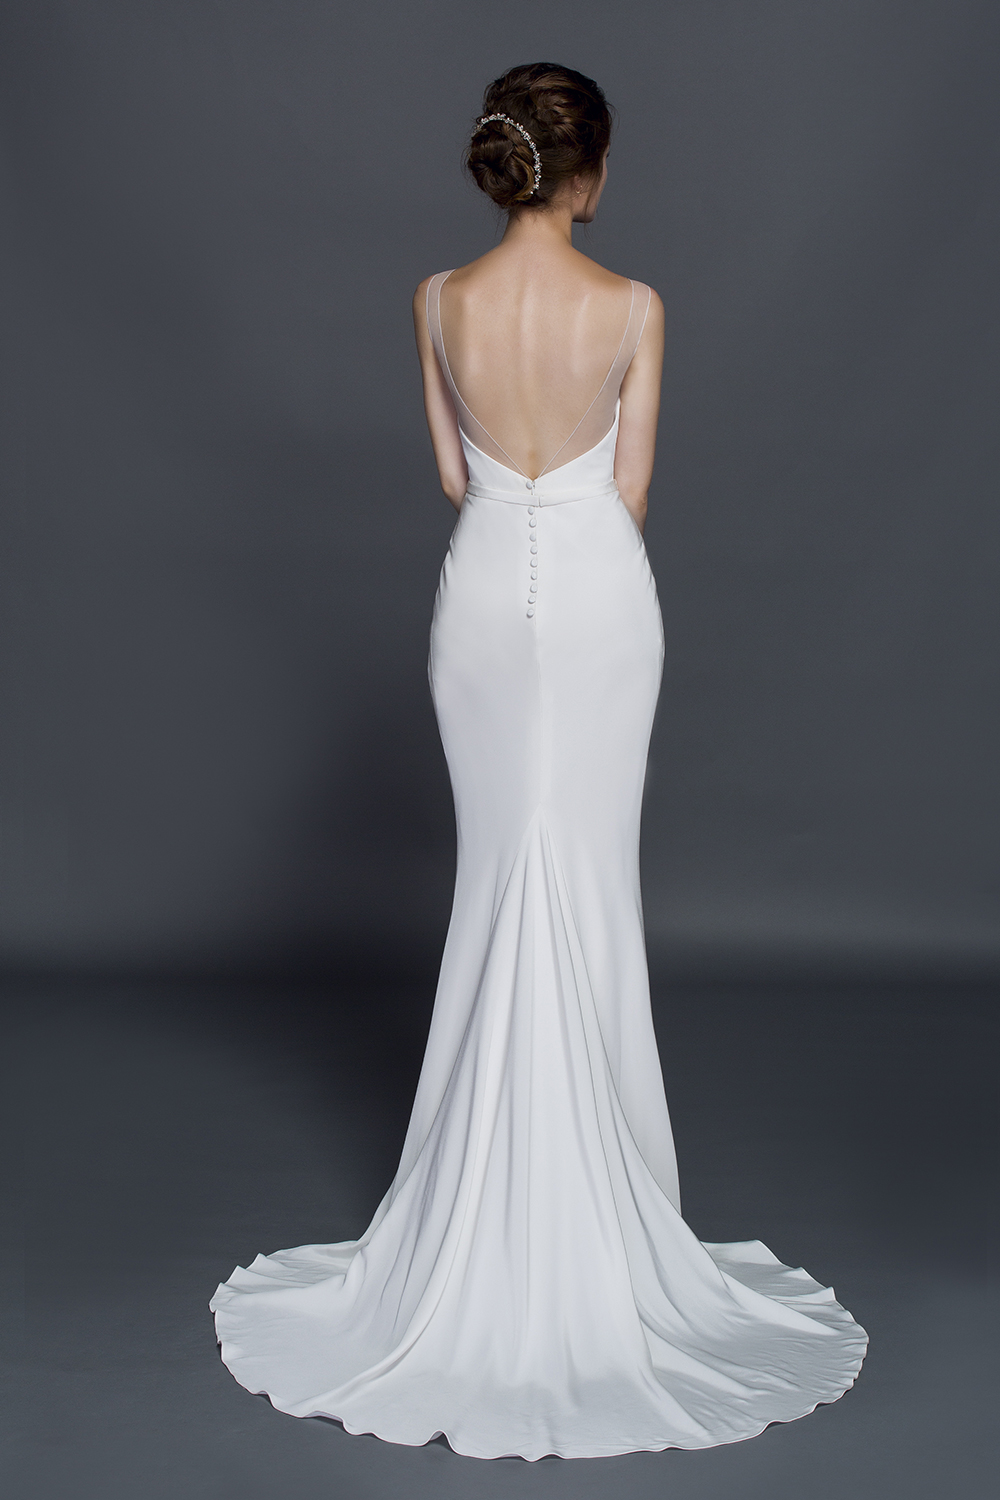 Plus Size Silk Crepe Wedding Gown With Sheer Illusion Neckline And